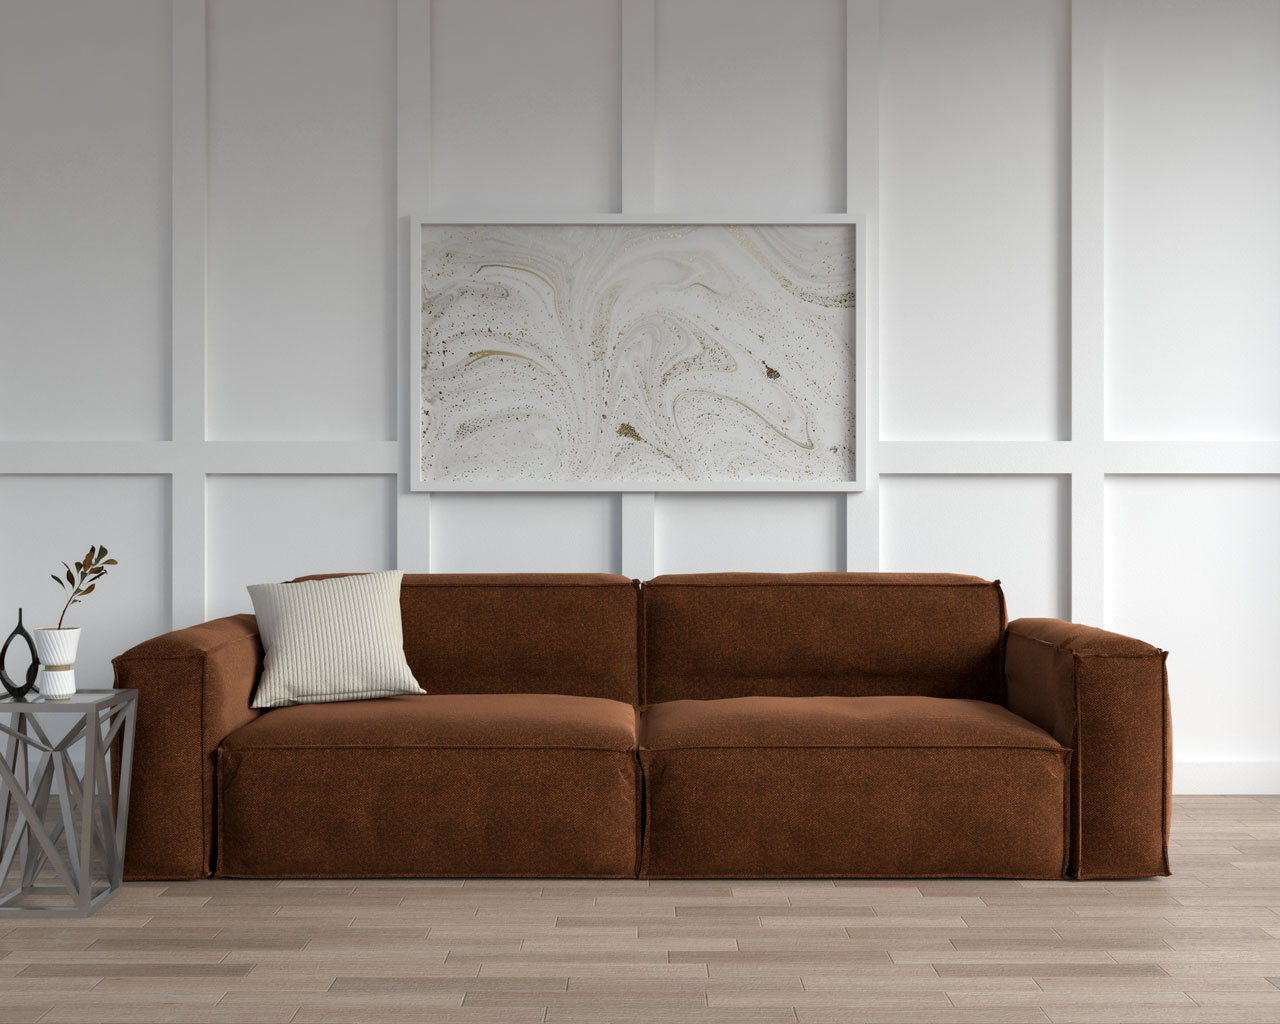 Brown couch with cream cushion